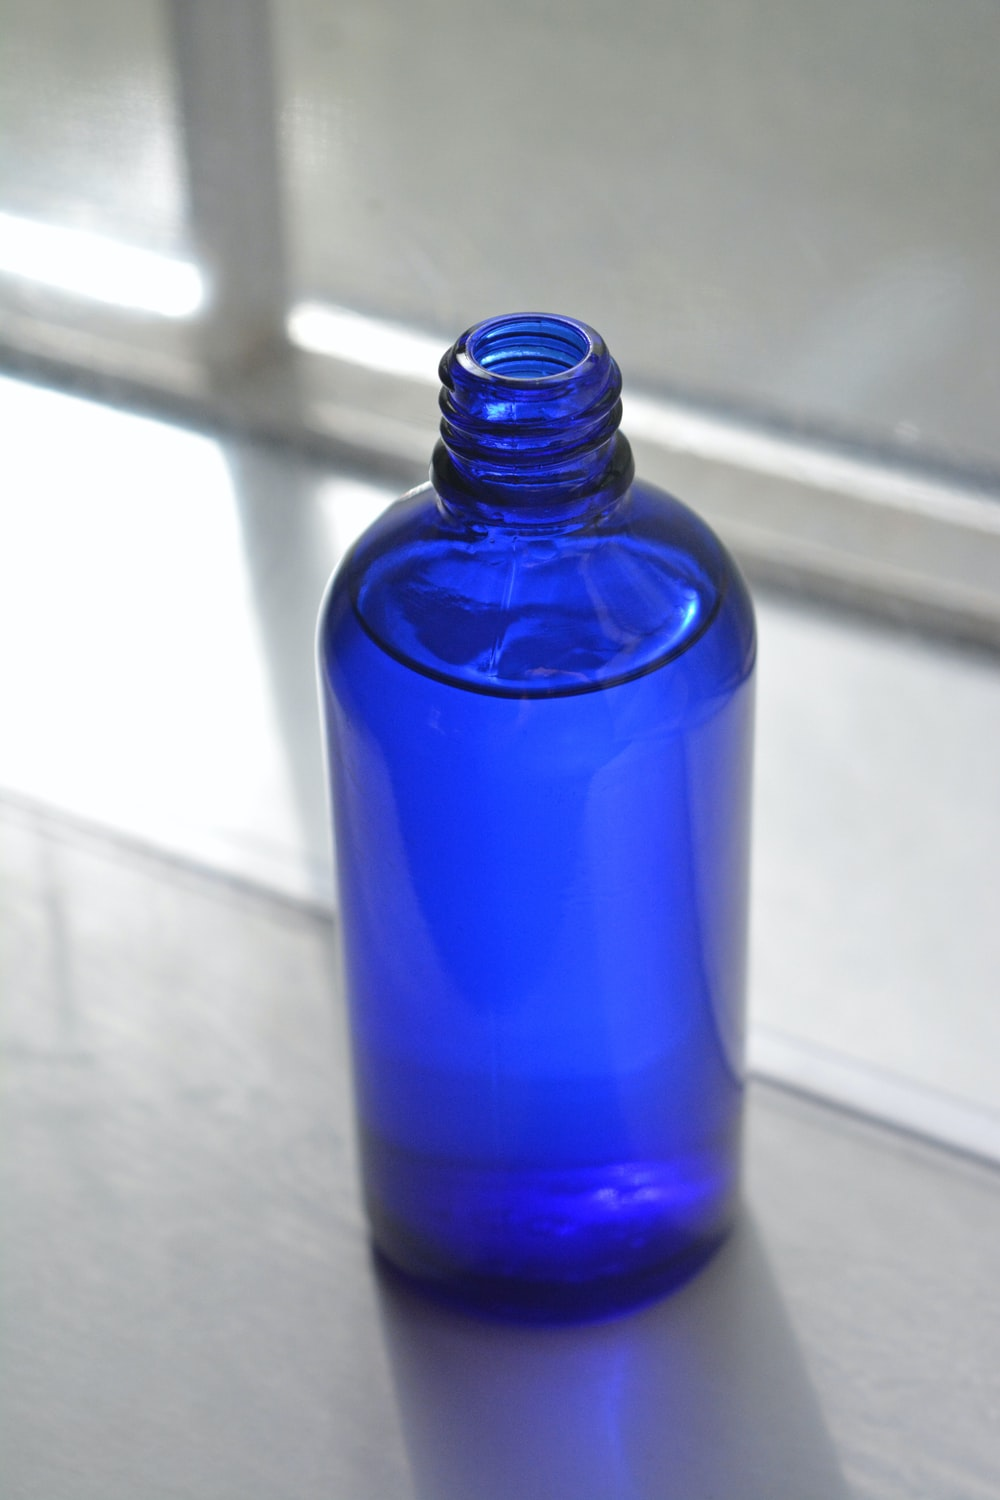 blue glass bottle on white table